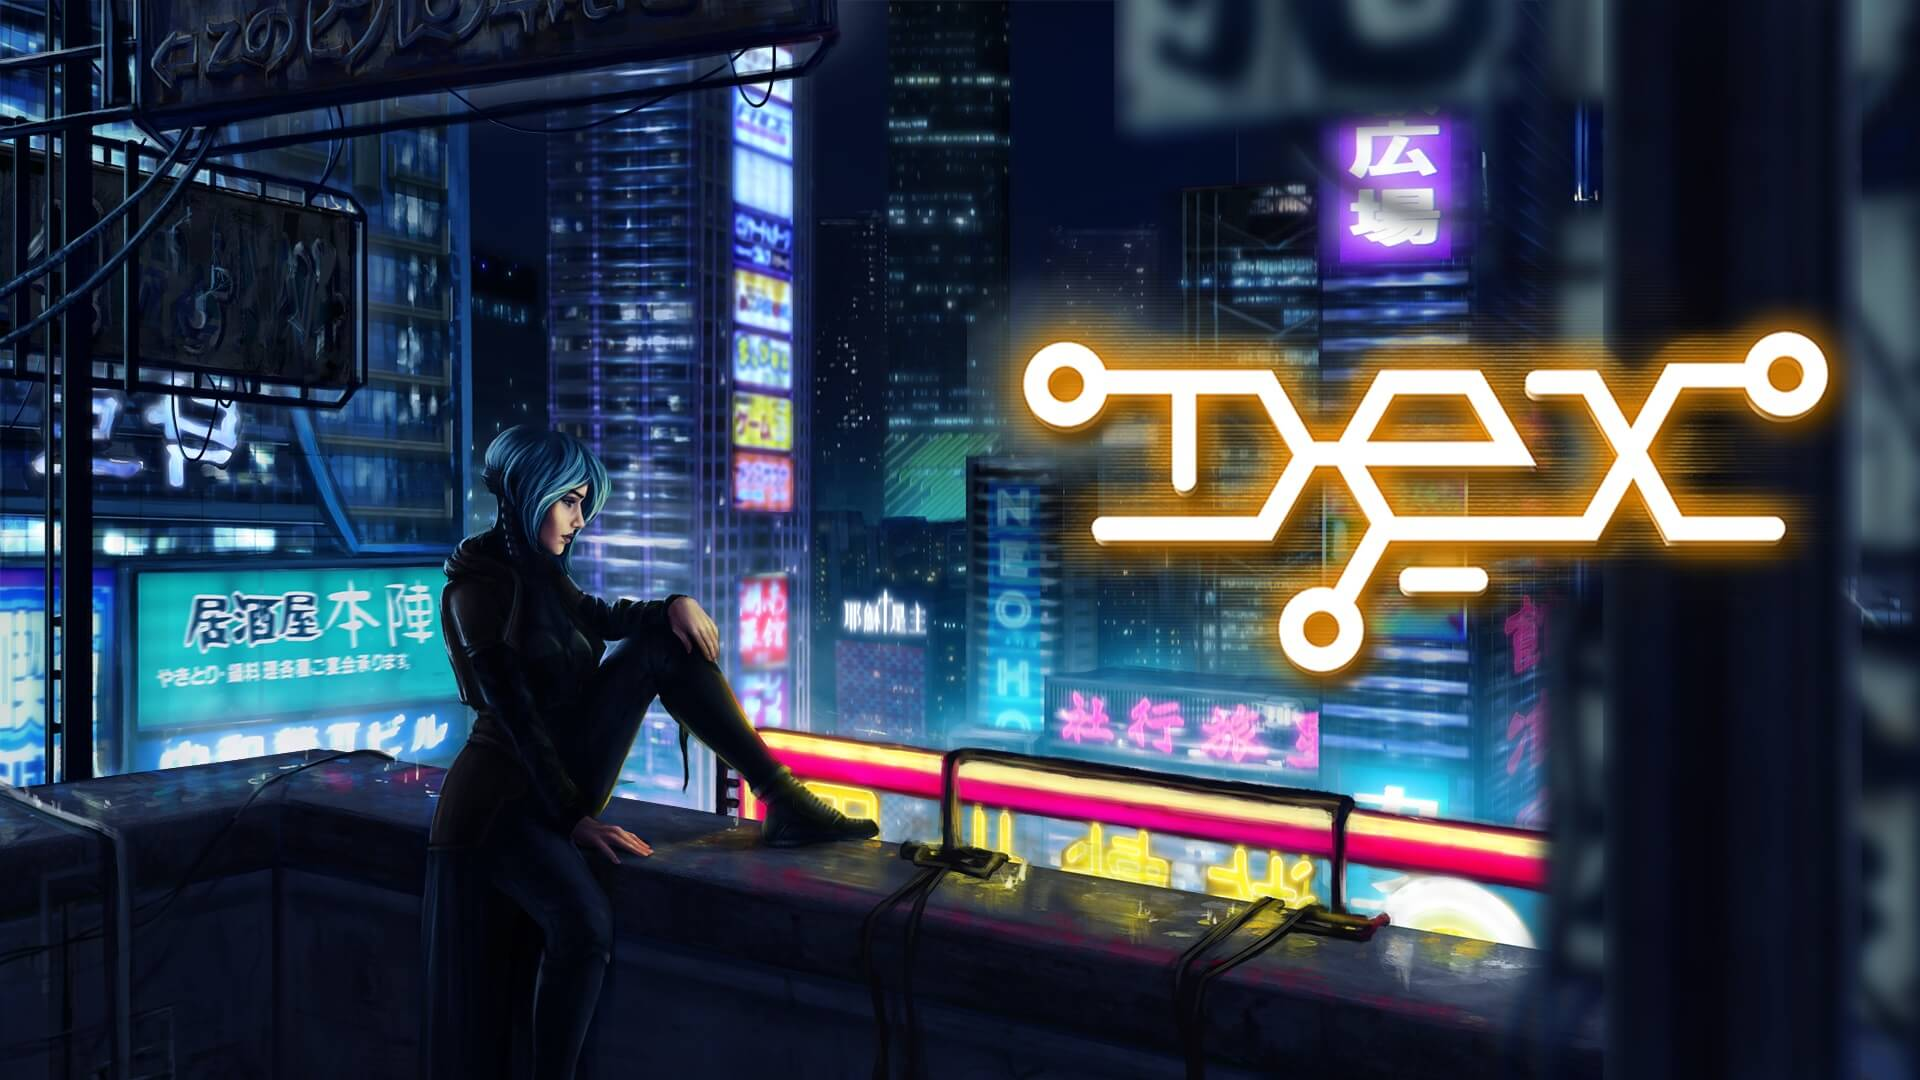 2D Cyberpunk Game Dex Coming To Nintendo Switch